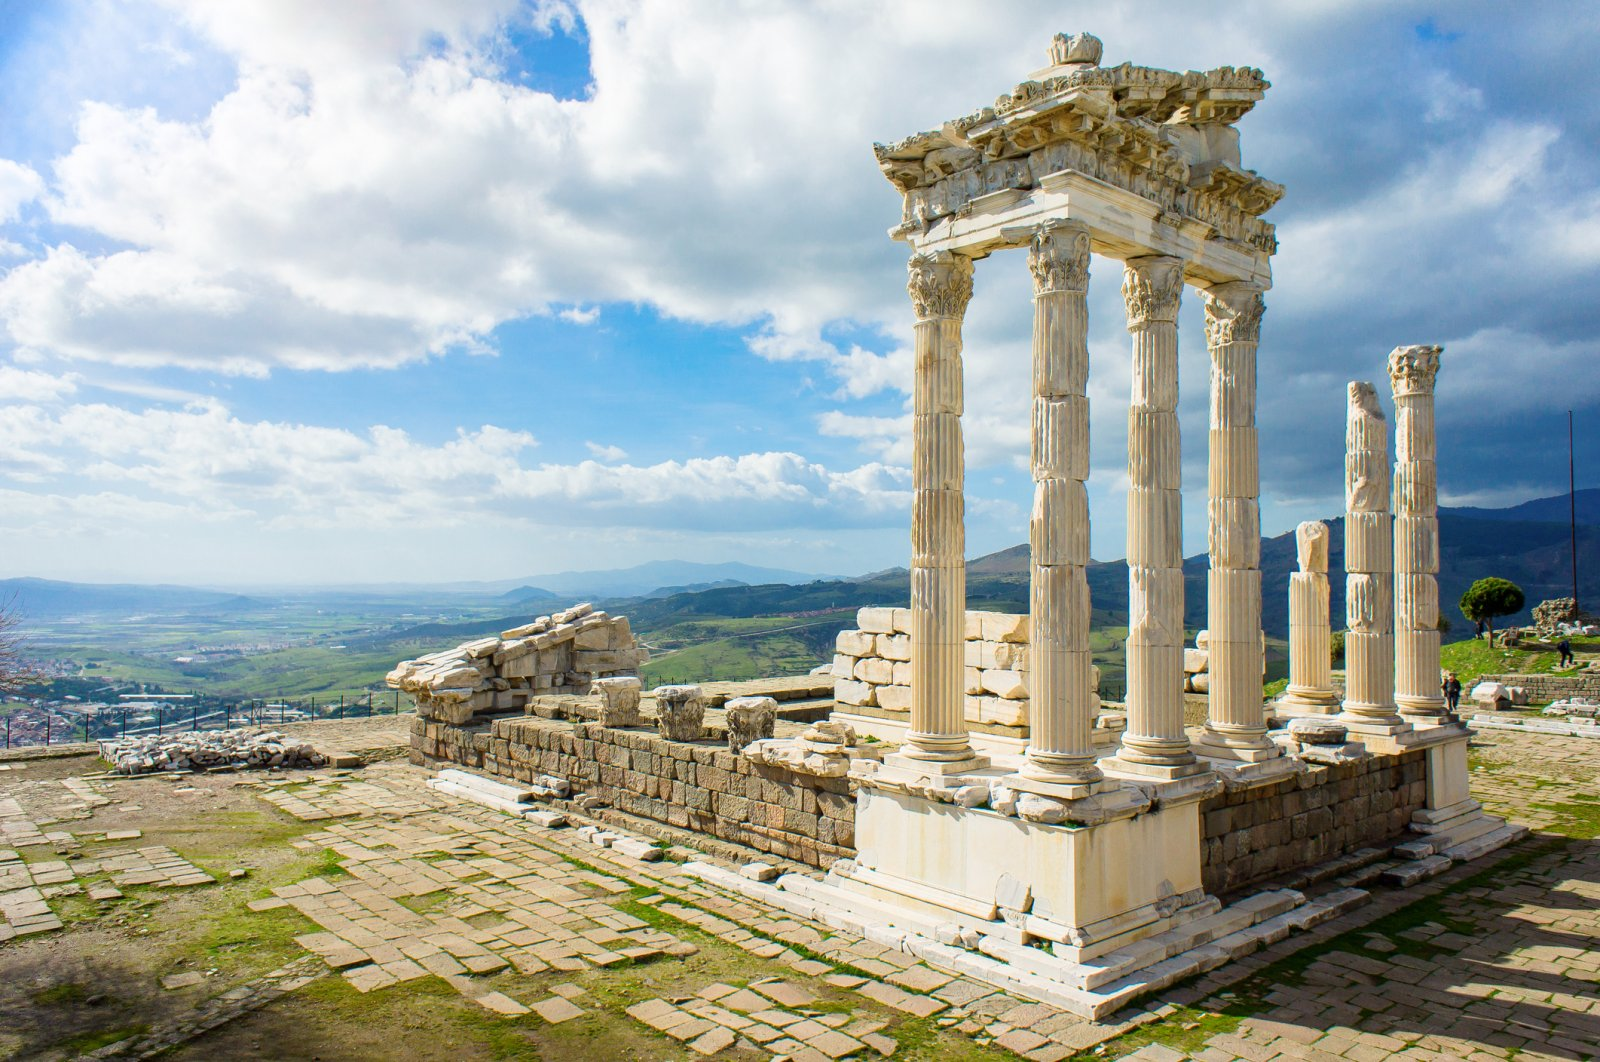 The temple of Trajan in the ancient city of Pergamon, Bergama, Turkey. (iStock Photo)